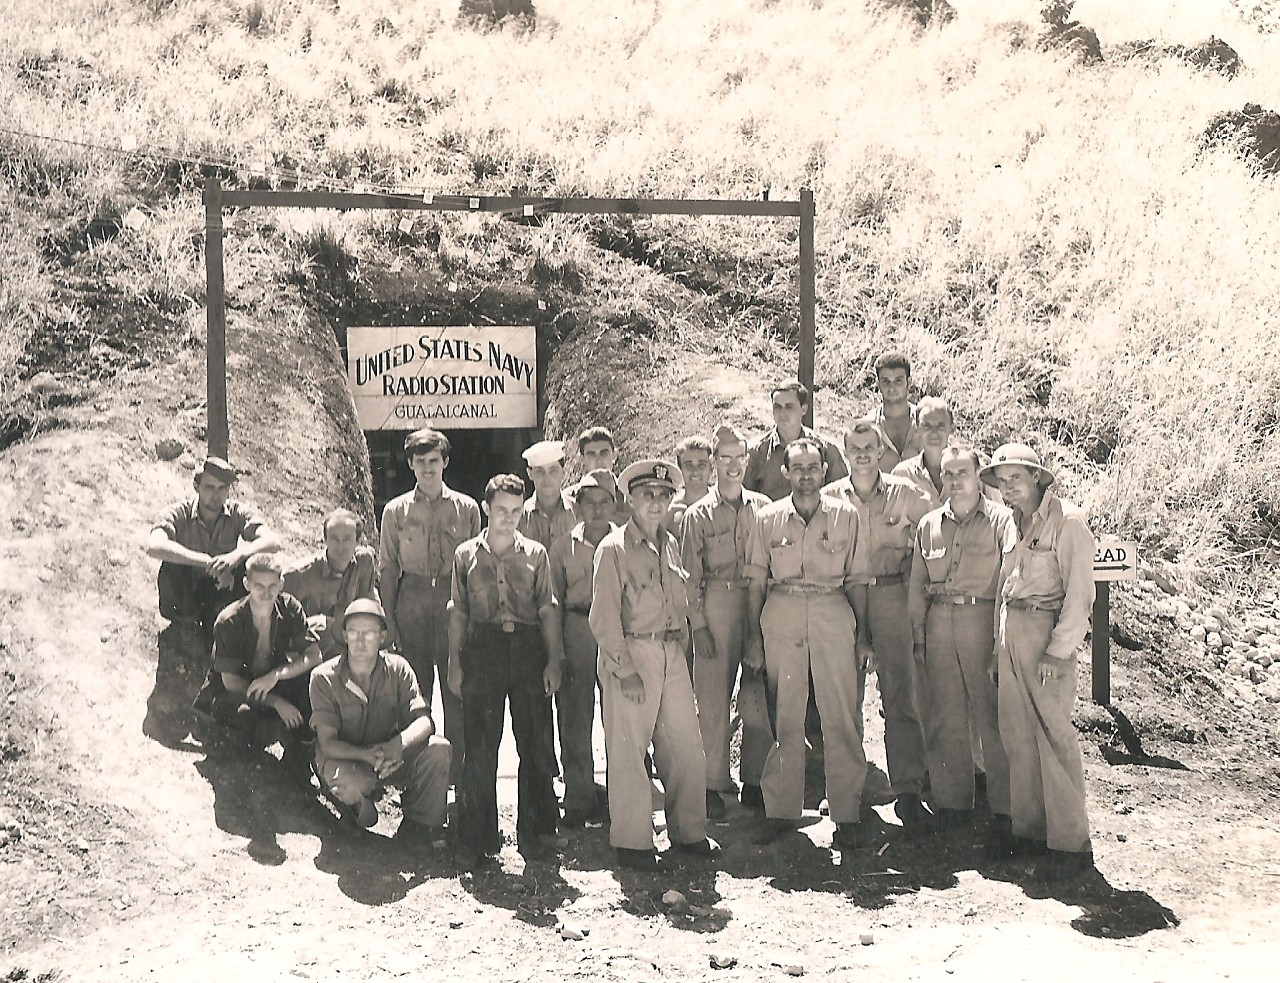 US Navy Radio Station Guadalcanal built and run by the 6th Naval Construction Battalion, 7 December 1942.